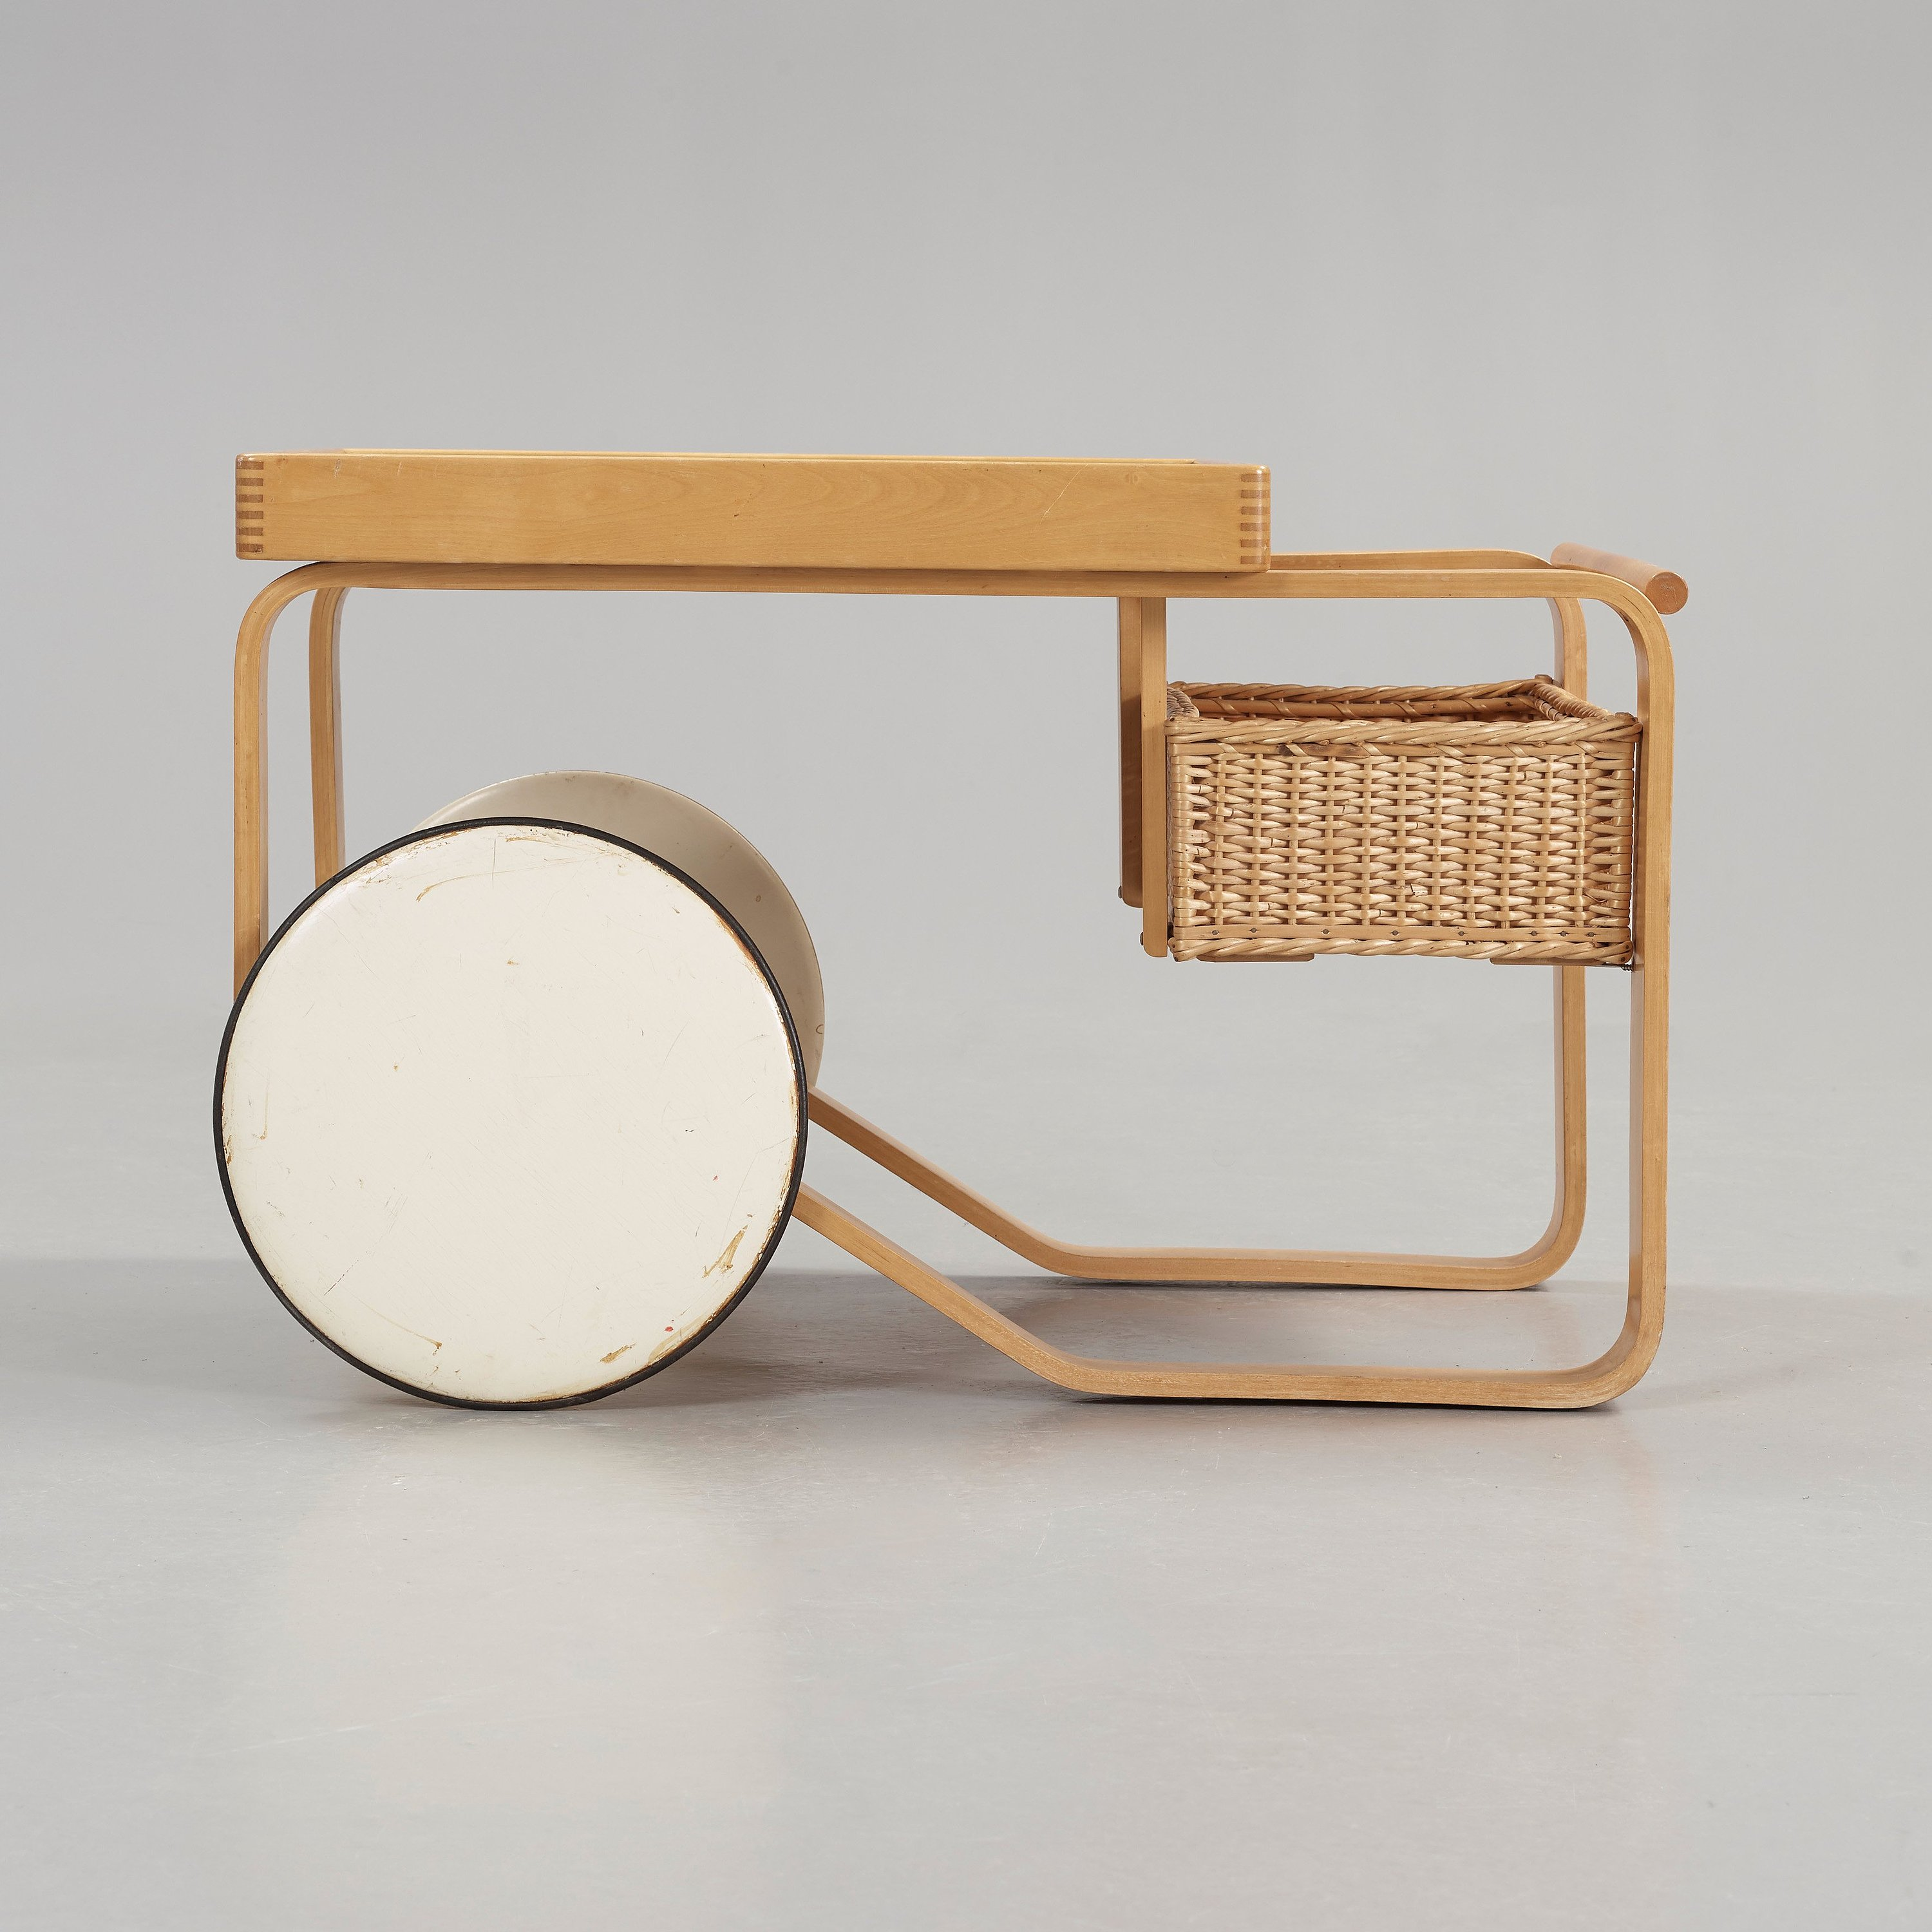 Design Alvar Aalto.An Alvar Aalto Birch Serving Trolley Made On License By